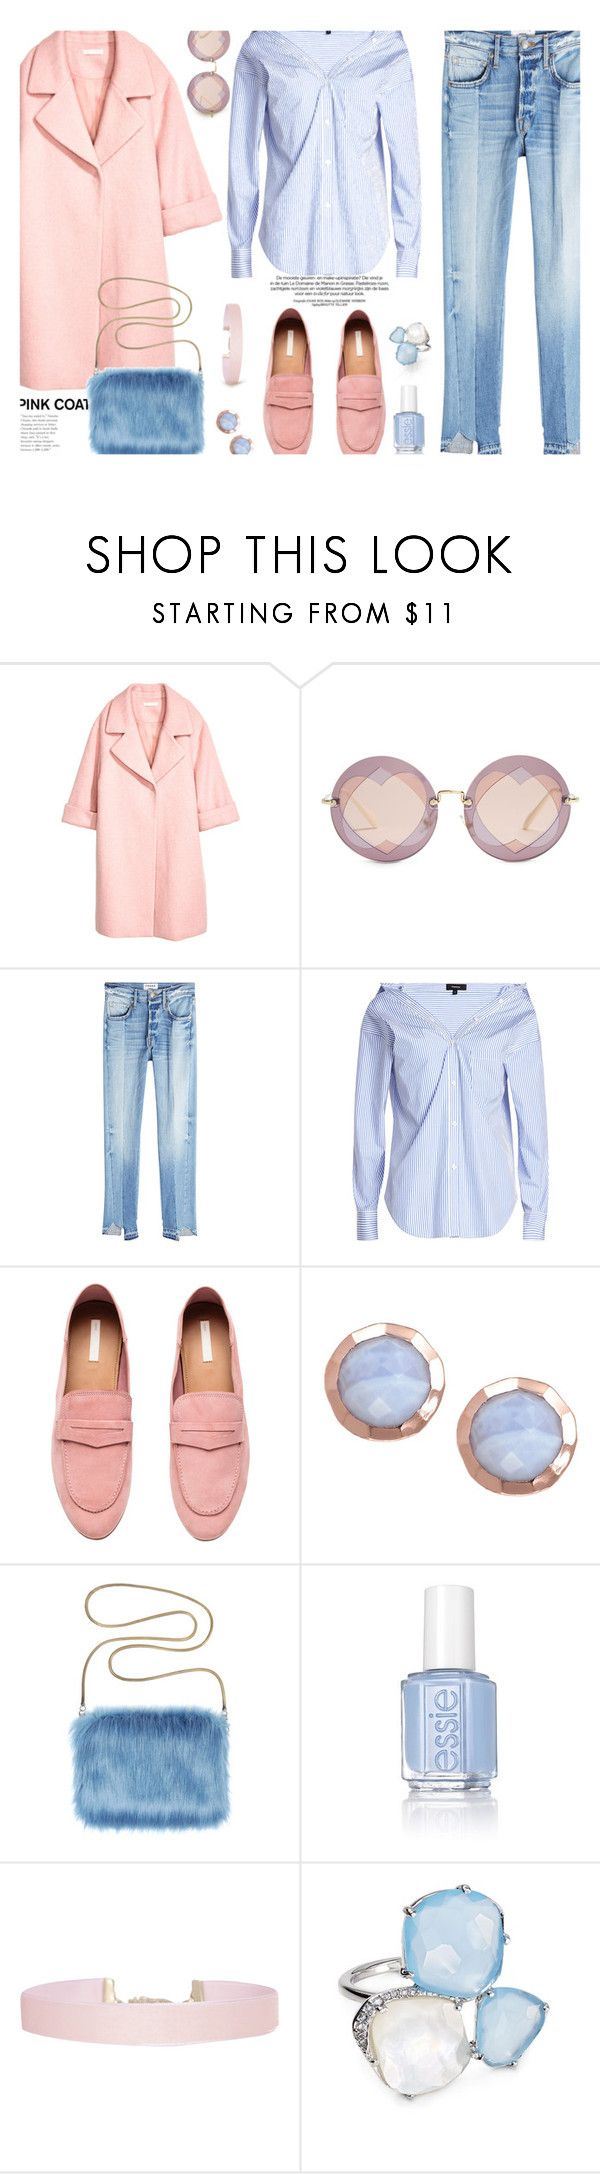 """Pink Coat..."" by unamiradaatuarmario ❤ liked on Polyvore featuring H&M, Miu Miu, Frame, Theory, Essie, Humble Chic, Nadri and pinkcoats"